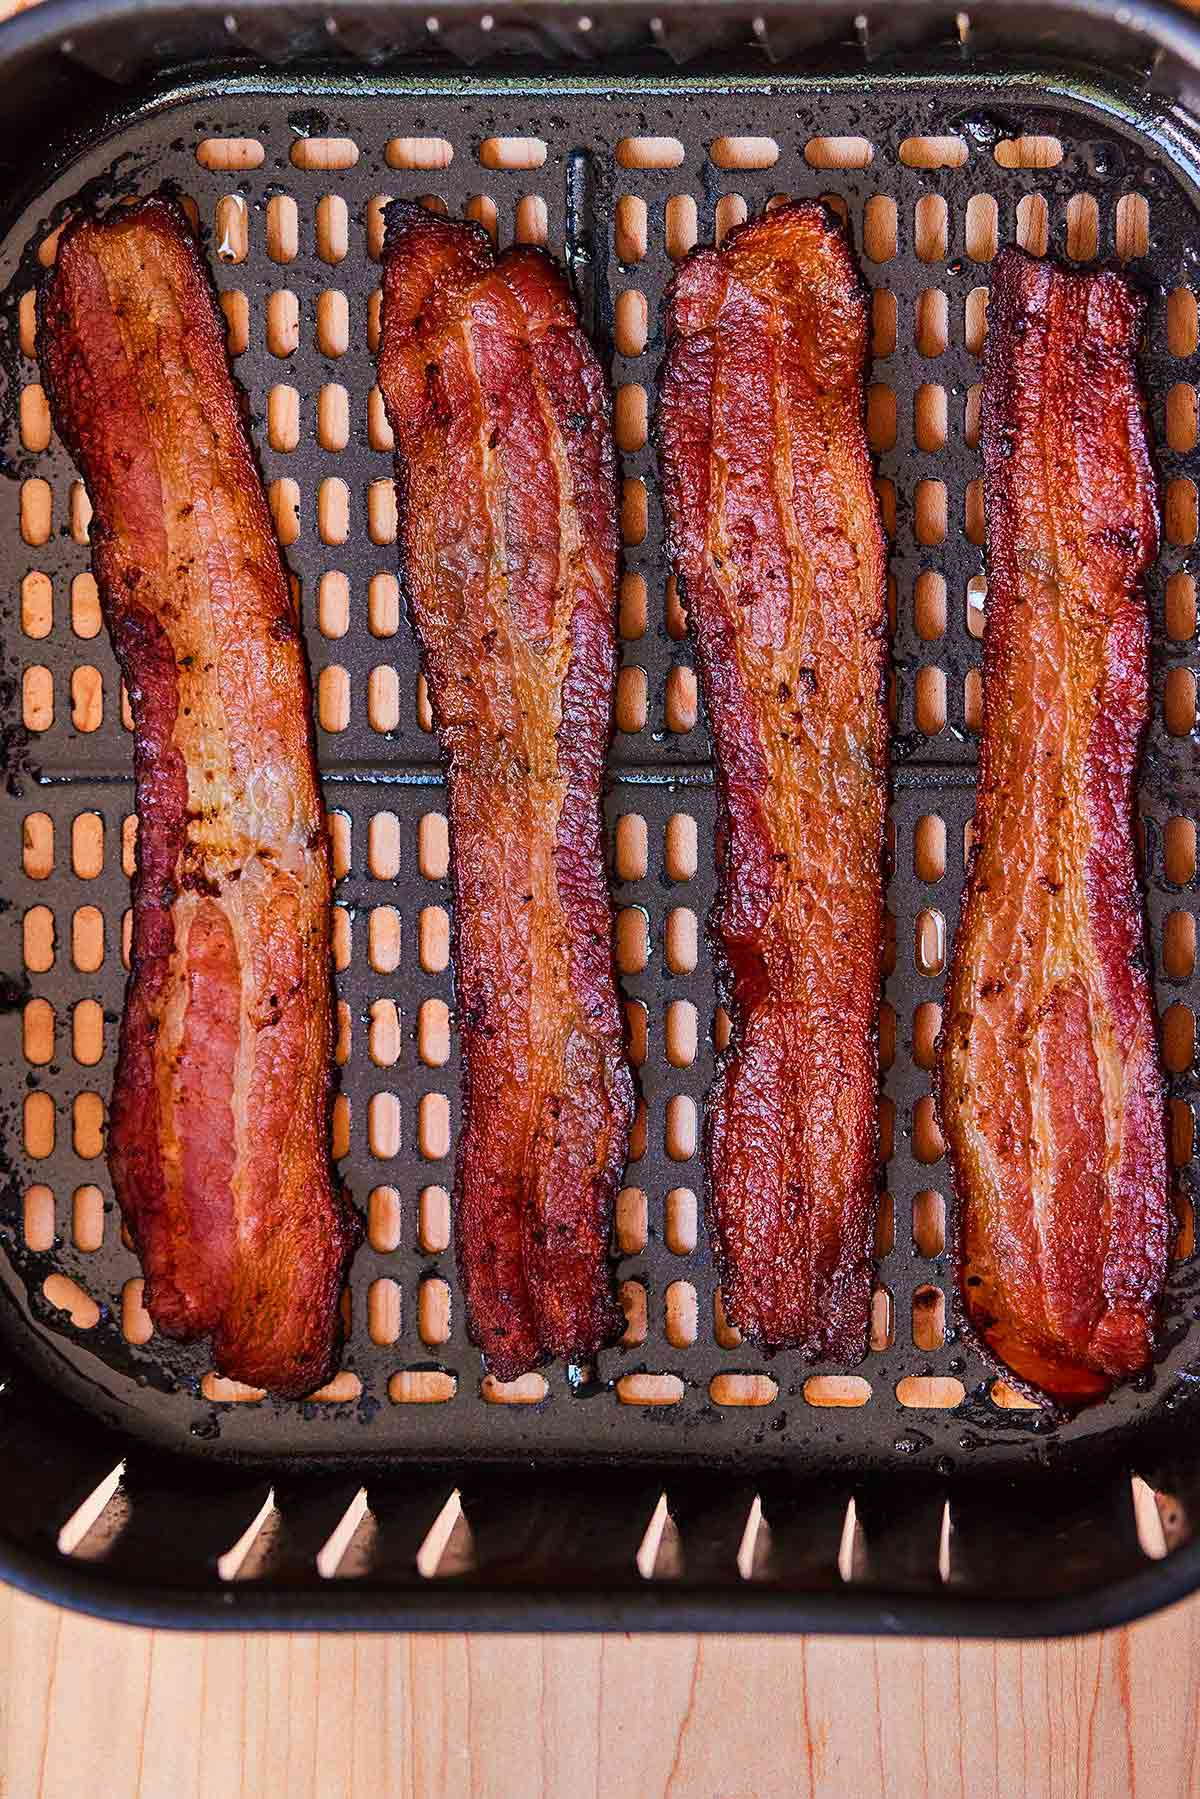 Four slices of bacon in an air fryer basket.